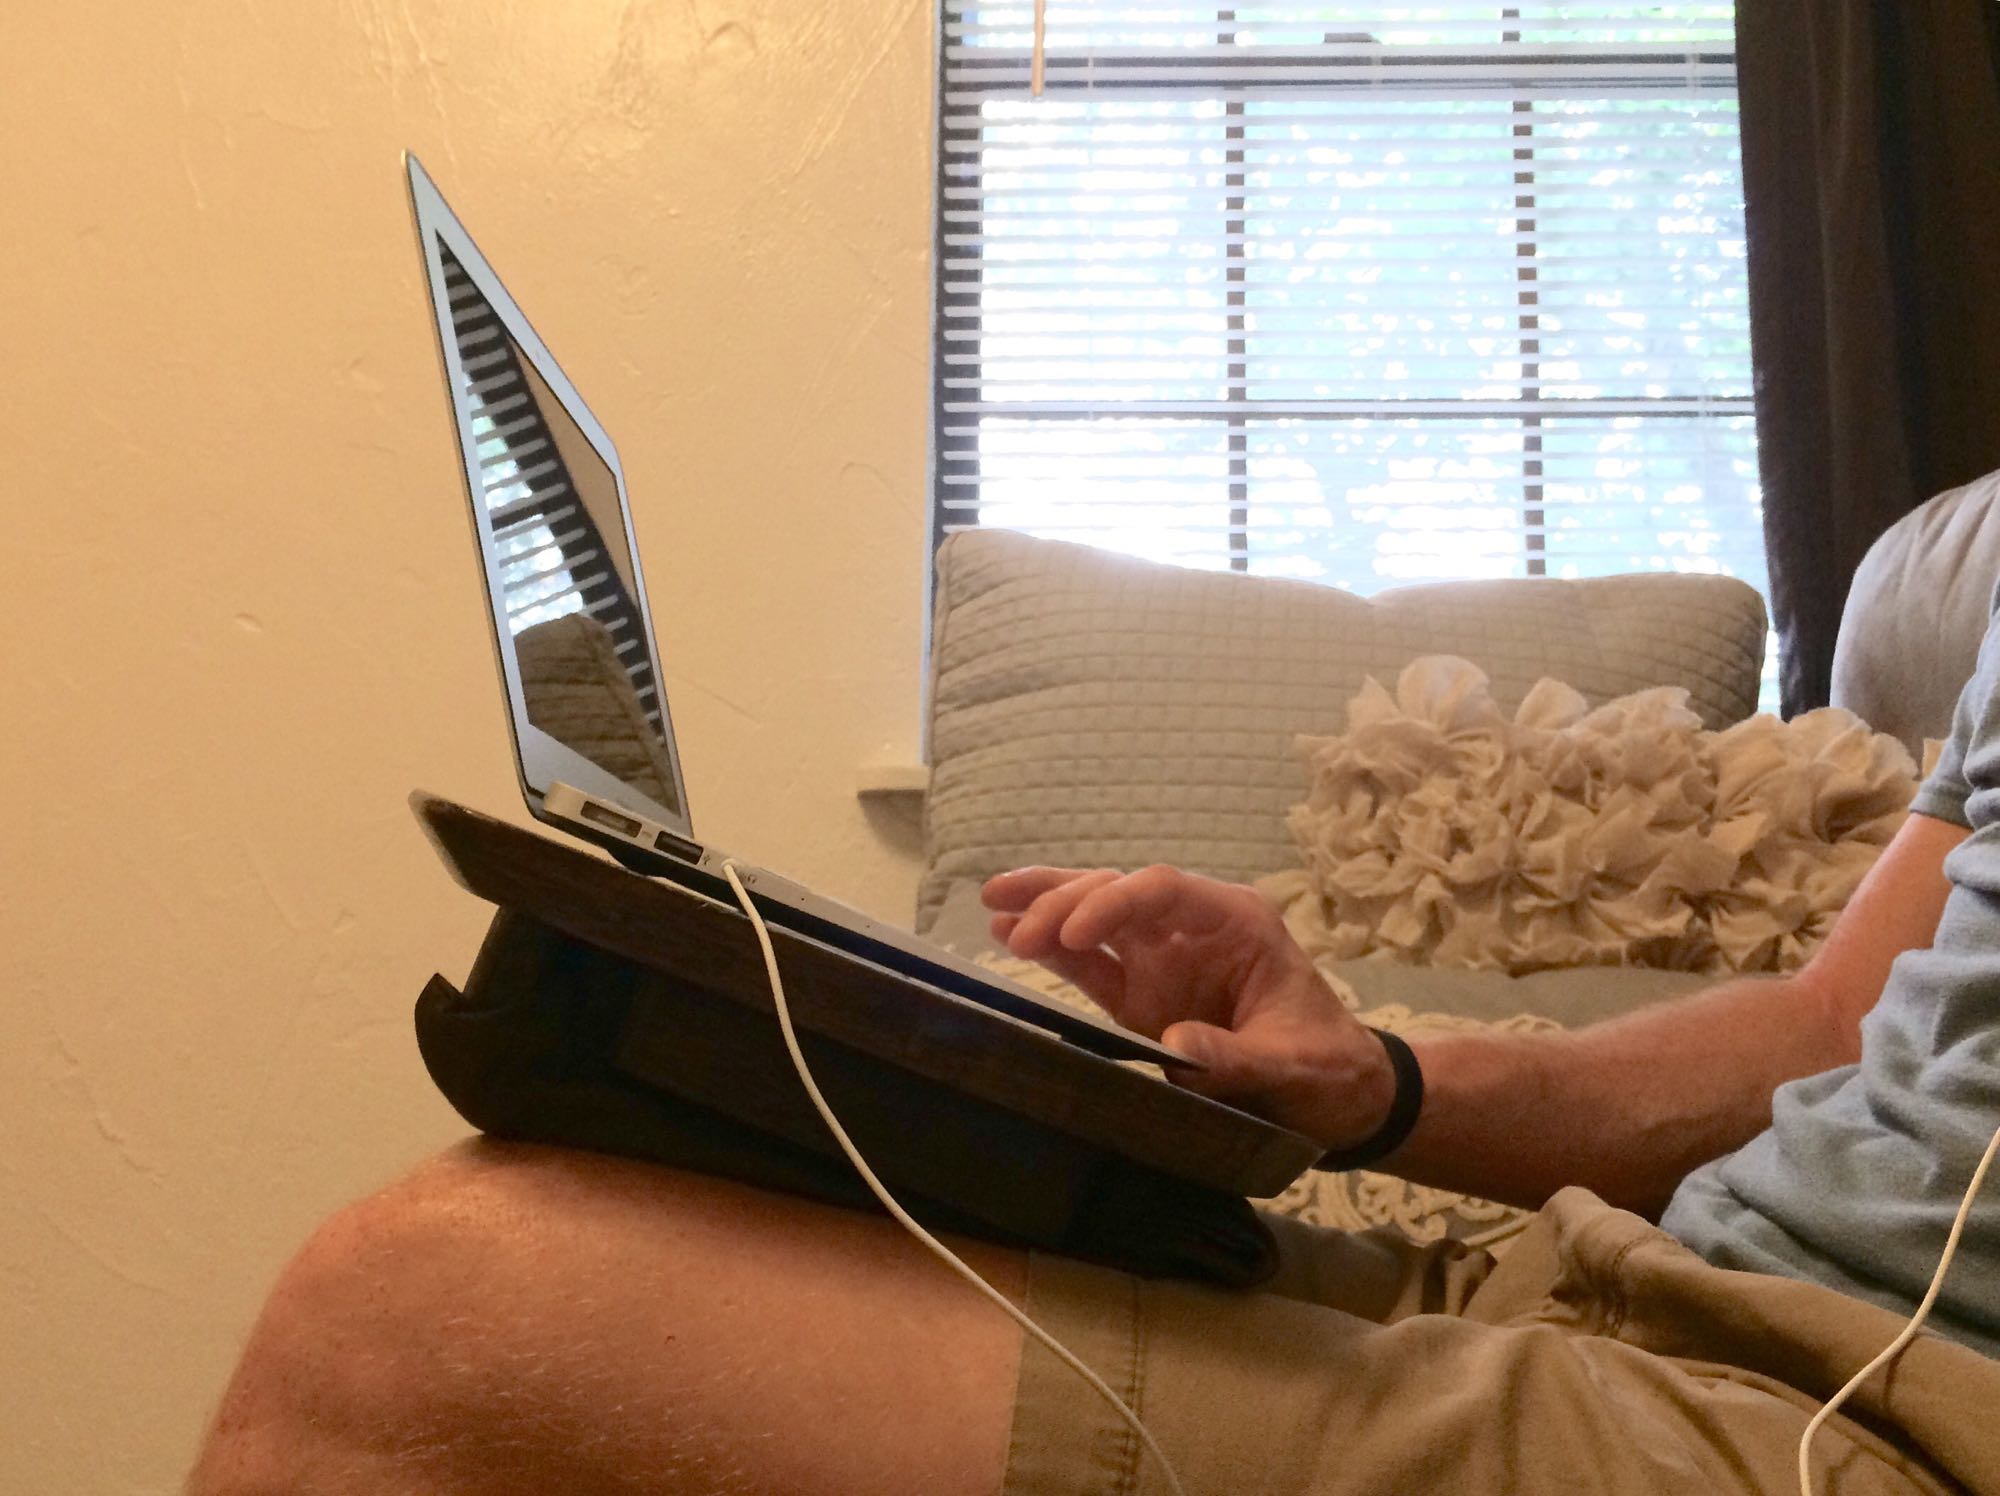 And image of Nick using the lap desk on a couch.